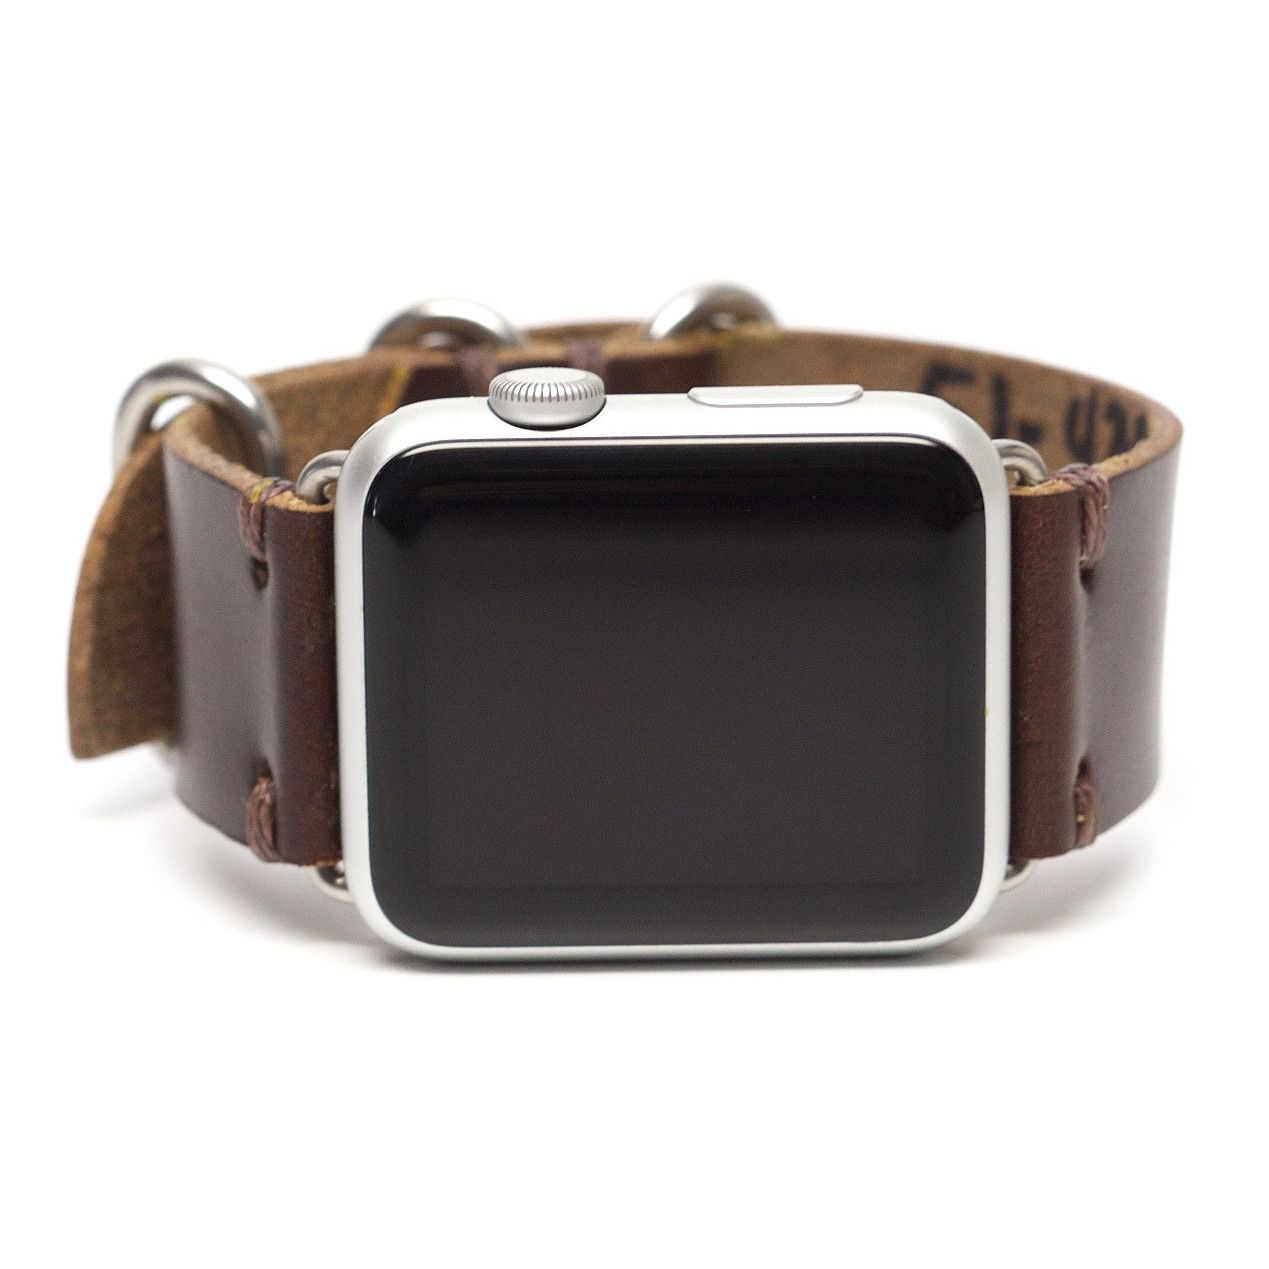 E3 Horween Leather Watch Band for Apple Watch: Brown Chromexcel